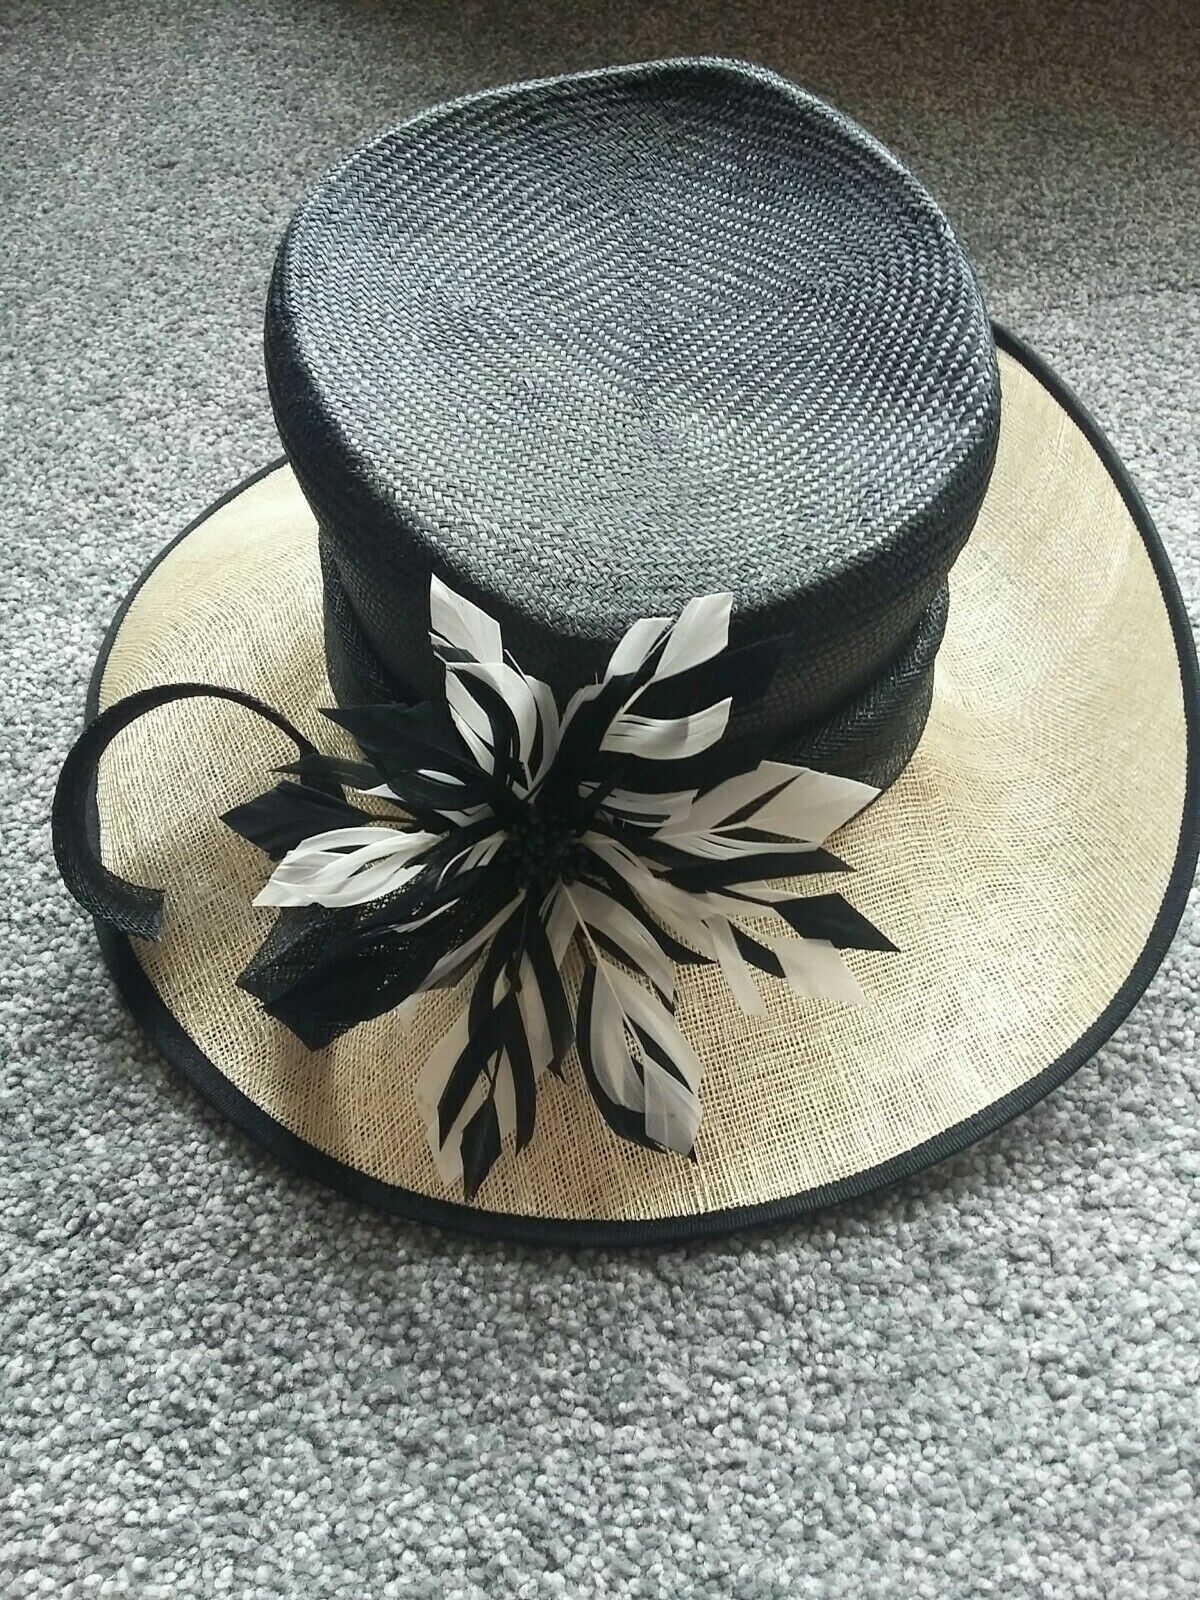 Jacques Vert Black & Natural Hat Feather Rosette Bow Wedding Races Formal